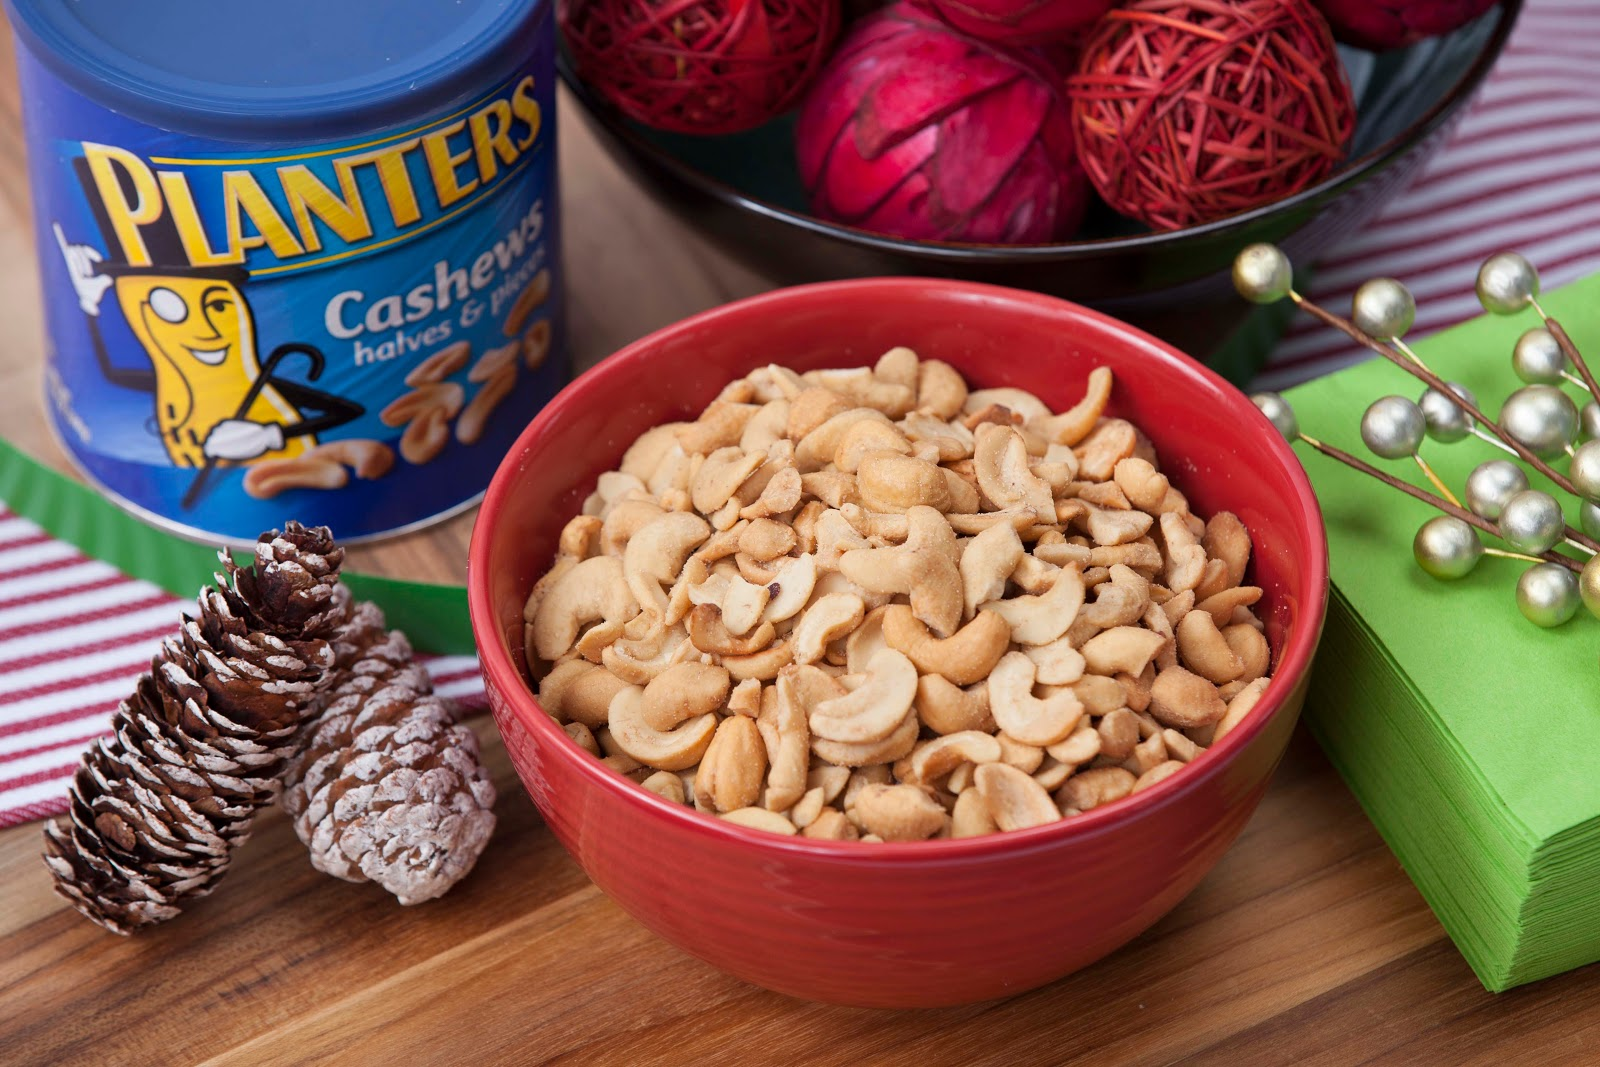 Easy Holiday Entertaining Planter's Cashew Nuts